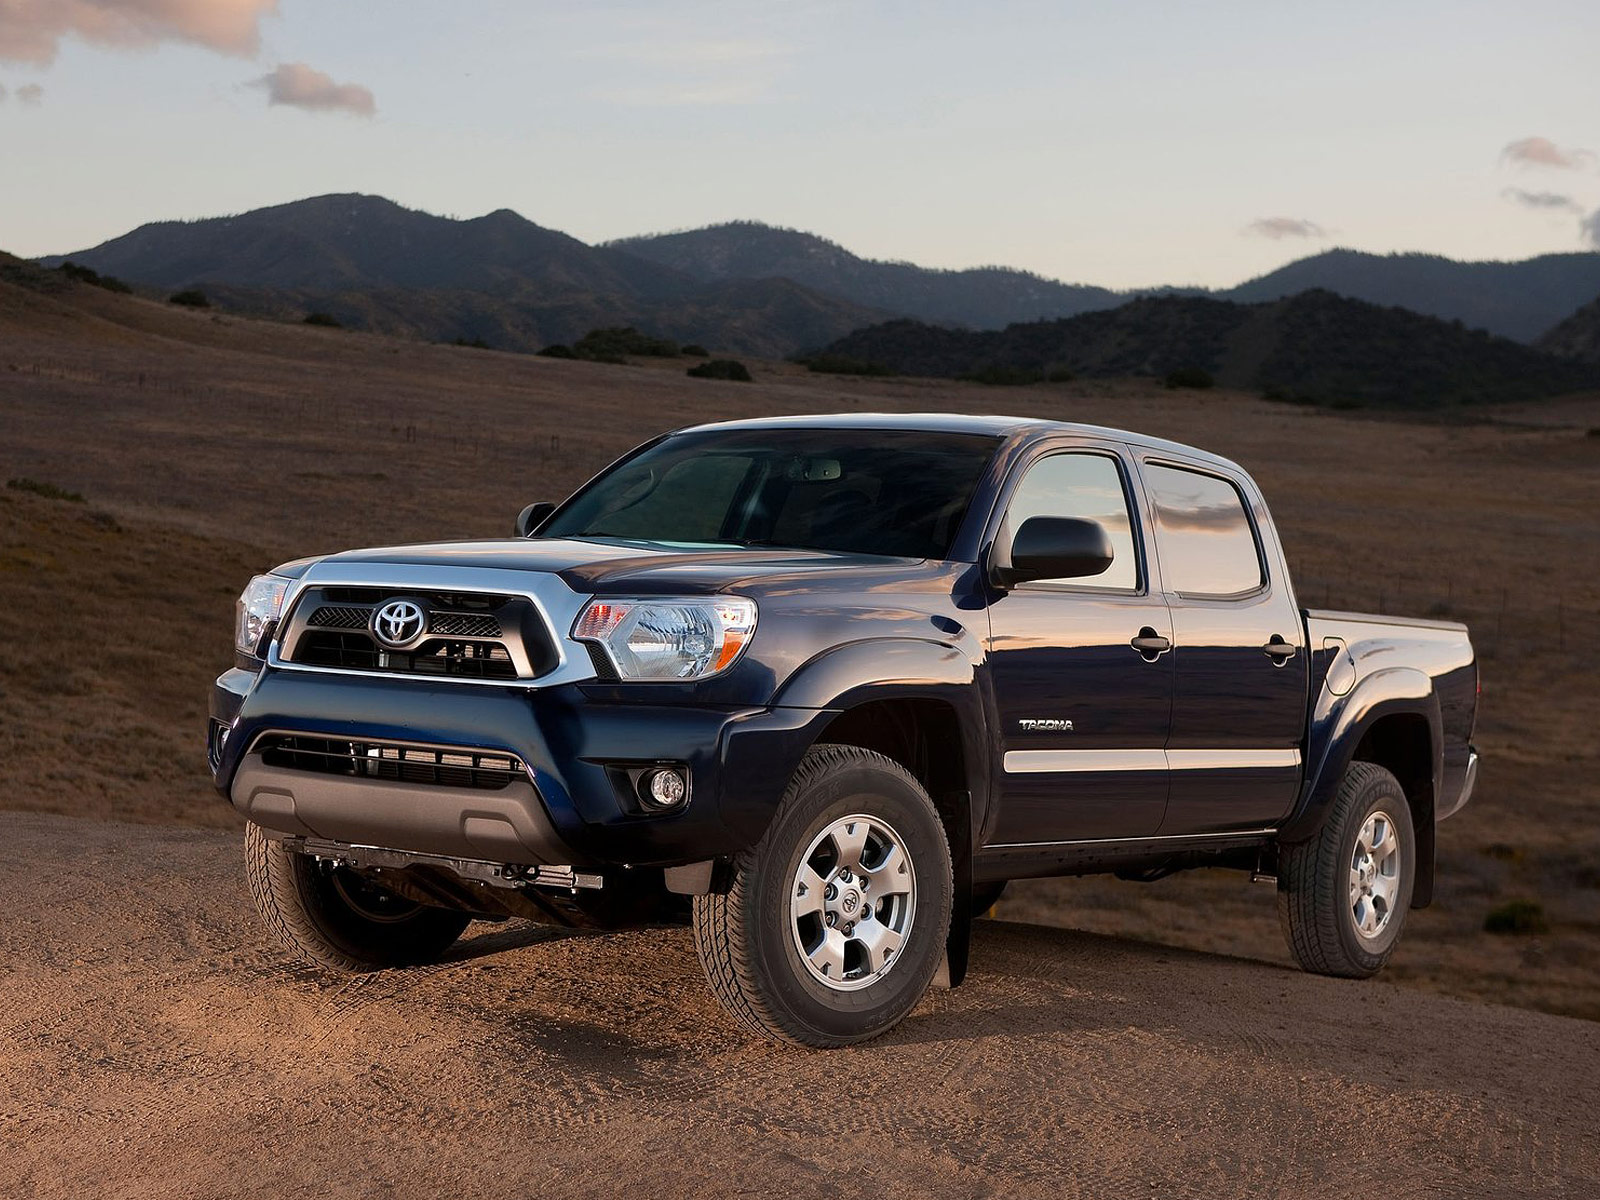 2012 TOYOTA Tacoma Car Accident Lawyers. Wallpaper